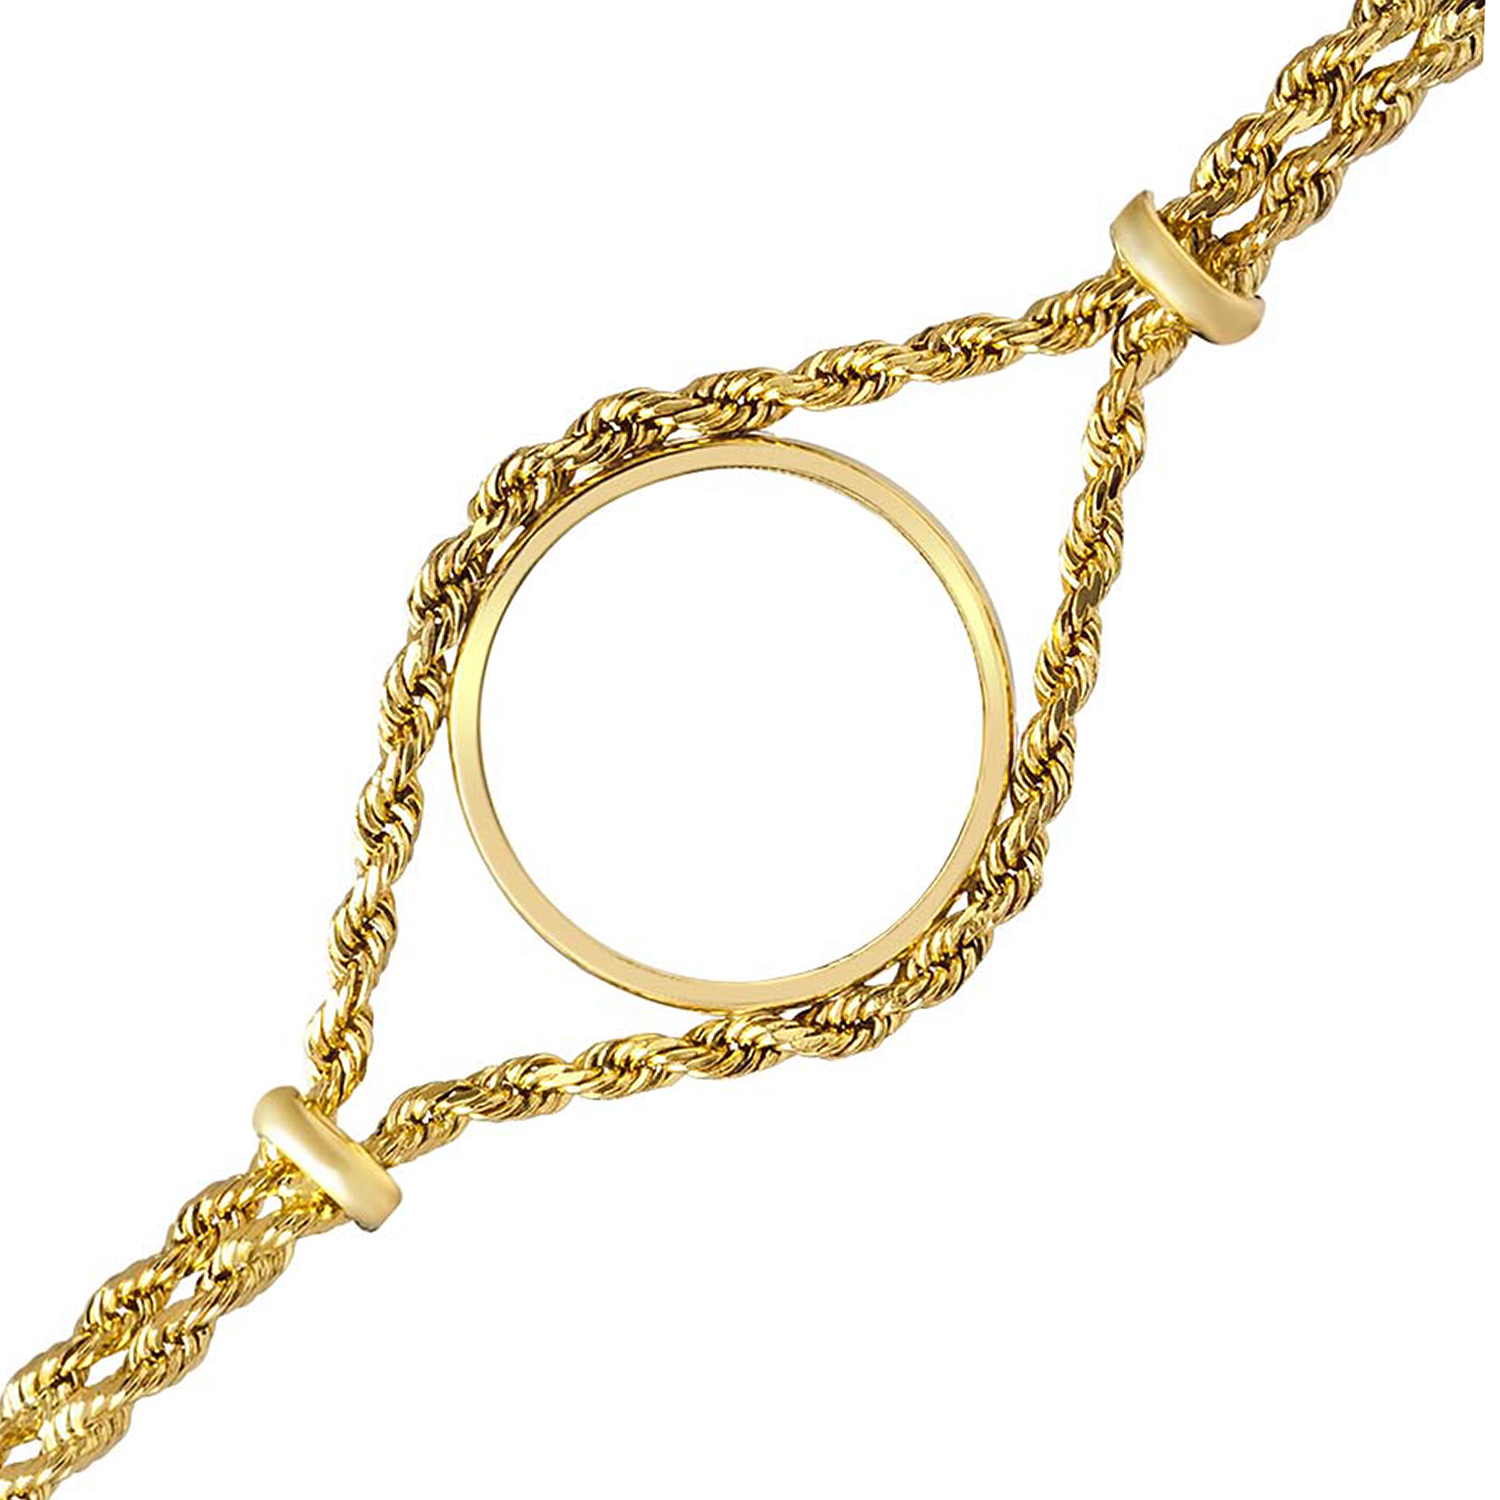 14k Gold Polished Rope Coin Bracelet - 7 inches (16.5 mm)